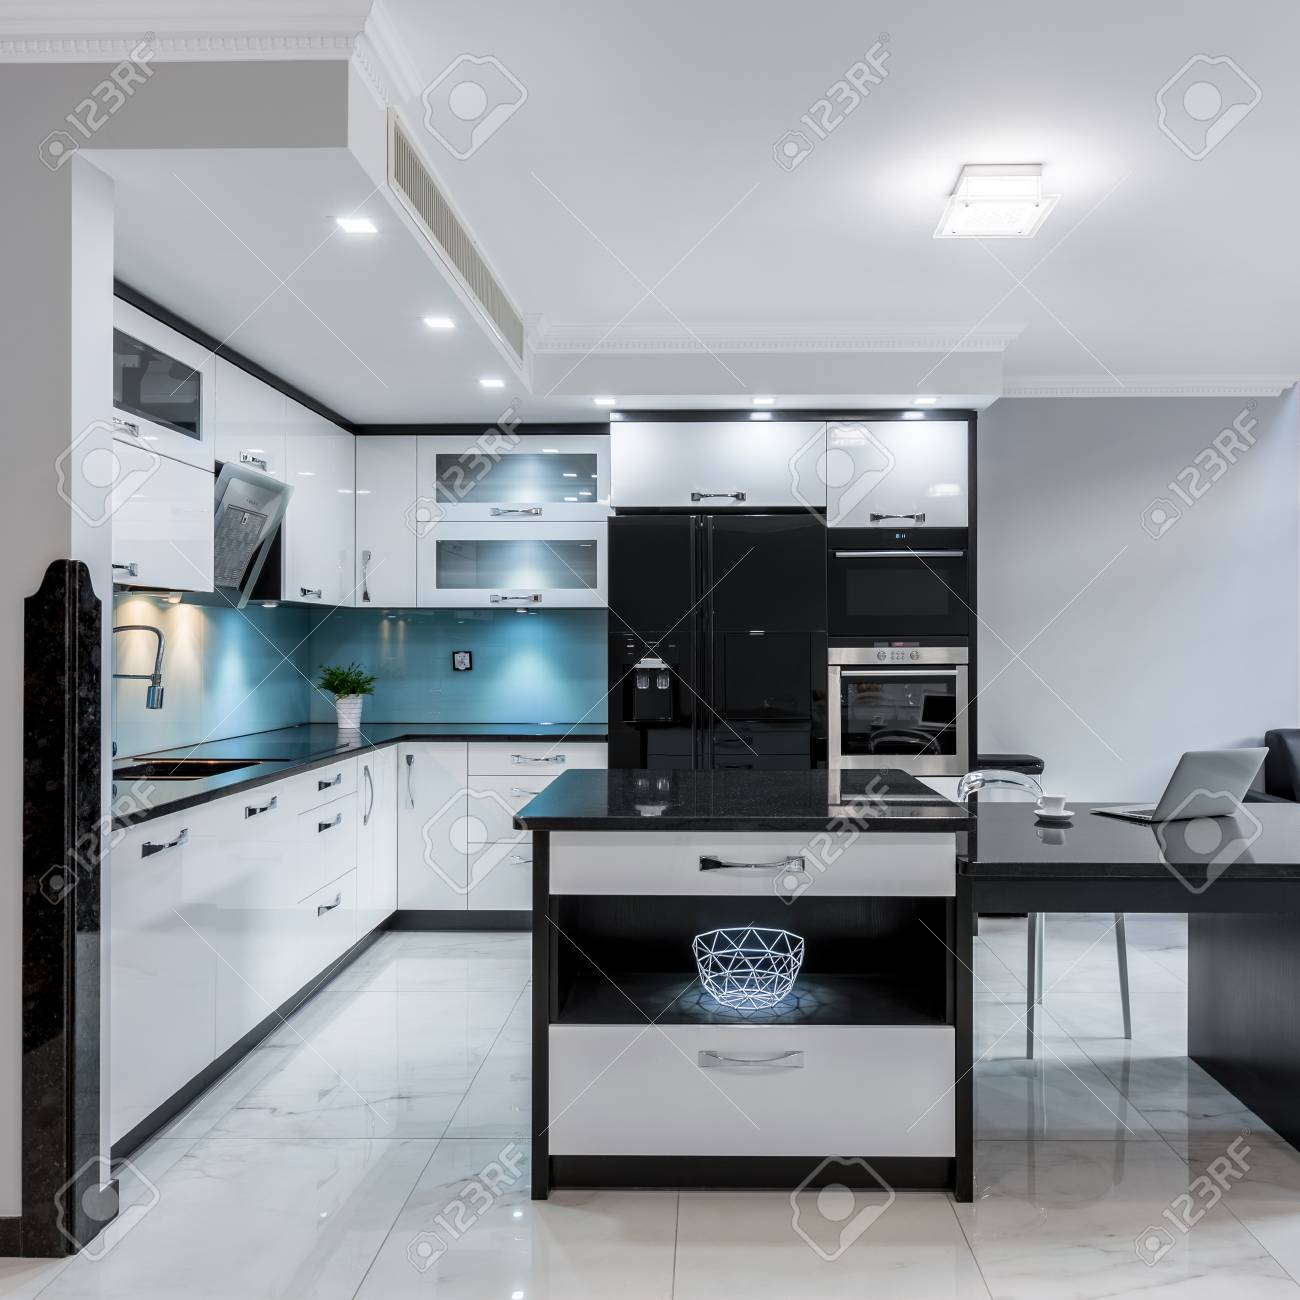 Modern And Luxury Black And White Kitchen Space With Island Stock